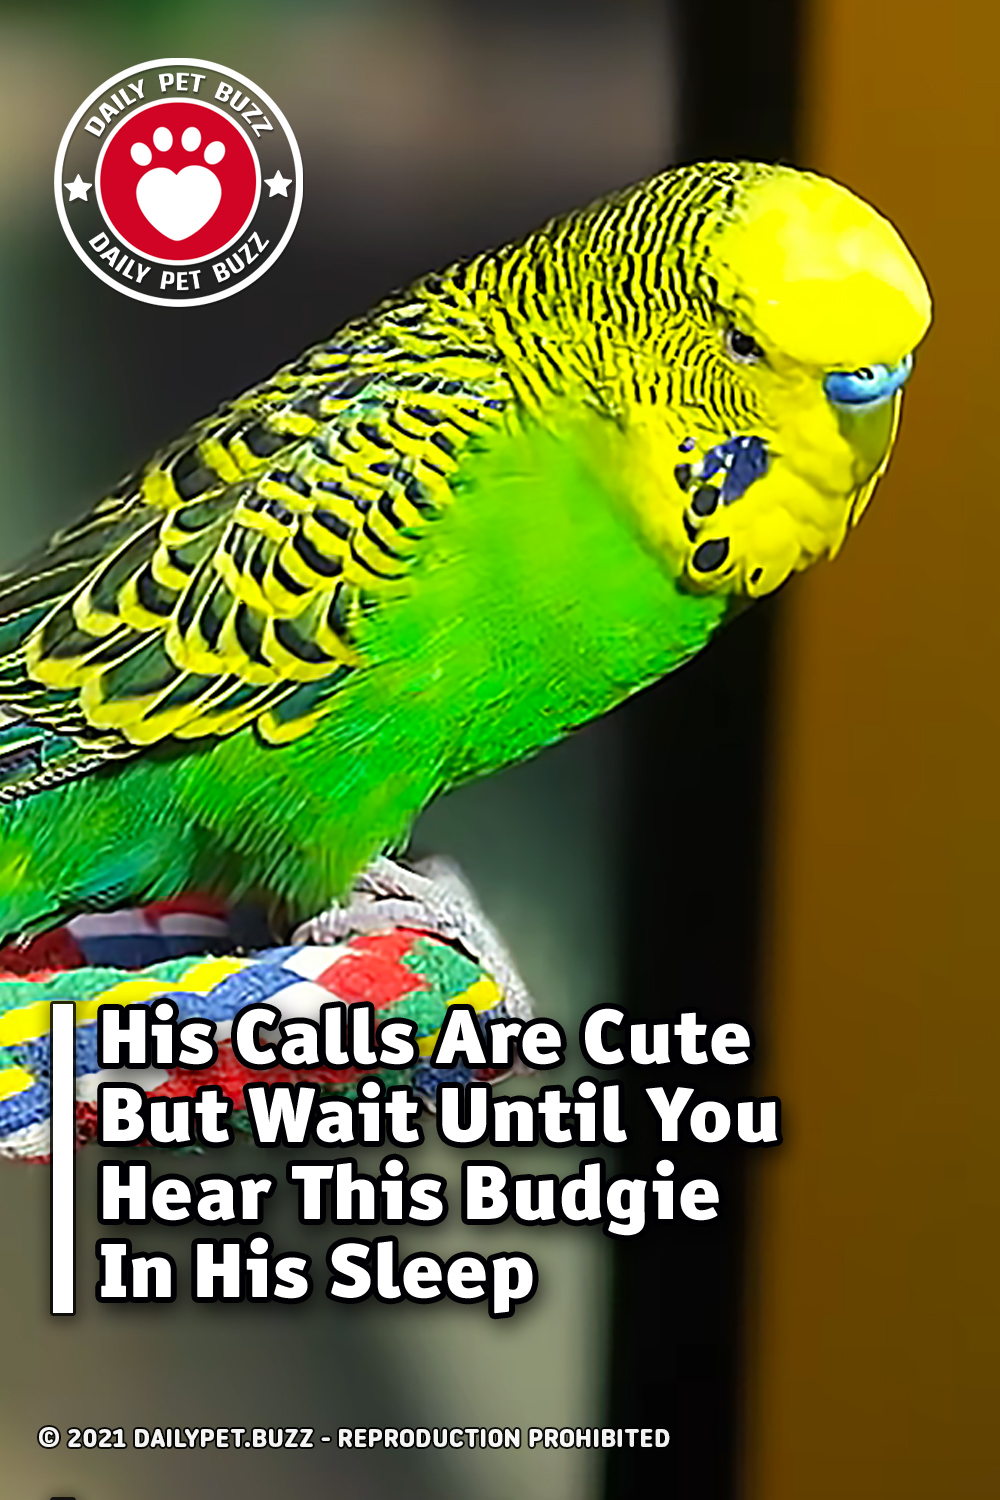 His Calls Are Cute But Wait Until You Hear This Budgie In His Sleep